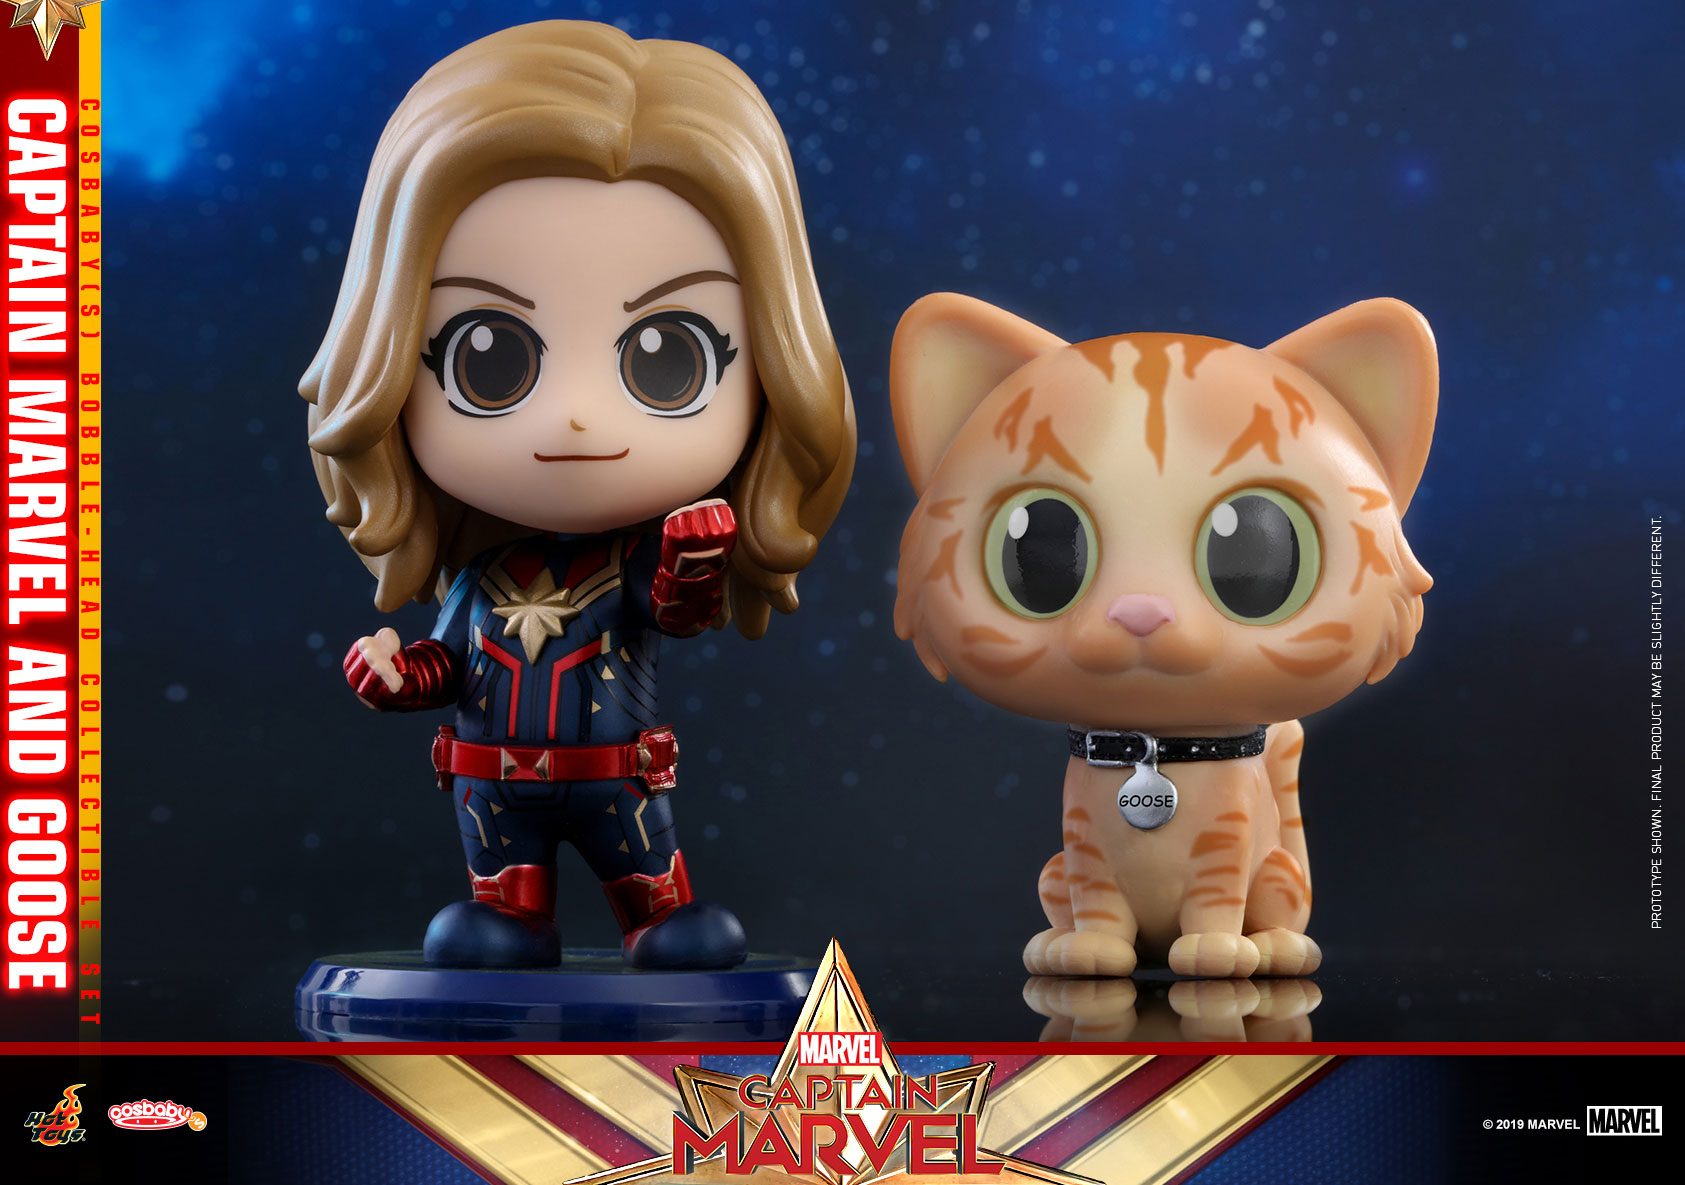 Hot-Toys---Captain-Marvel---Captain-Marvel-and-Goose-Cosbaby-Bobble-head-Collectible-Set-(S)_PR2